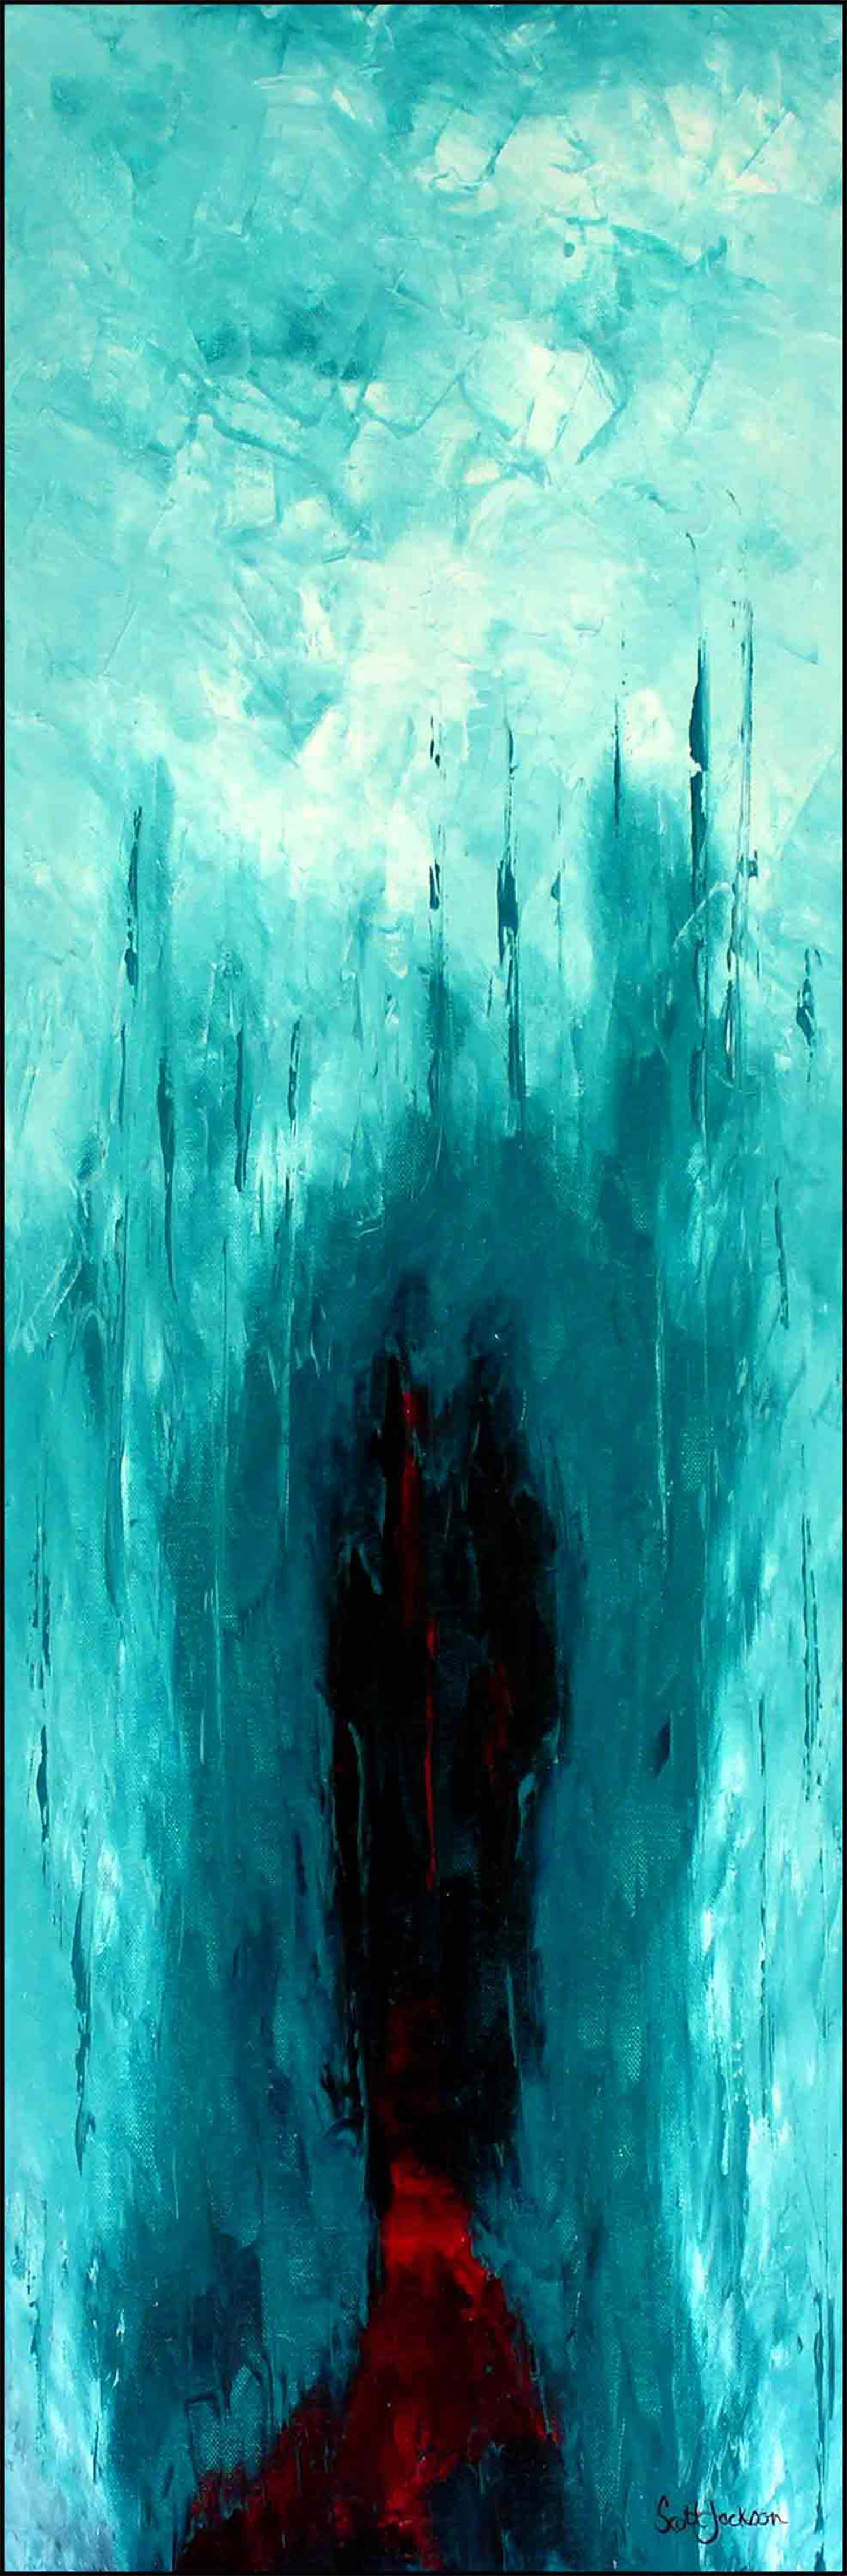 """This is a symbolic work dealing with the hidden depth of feeling evoked in people by dreams, forest and the spiritual world... for the viewer ..it is a case of interpret it as you will...  Title """" Red Spirit Door in The Forest of Dreams """", oil on canvas, 91 cm x 30 cm, ready to hang, ref 0636,  $450 AUD"""